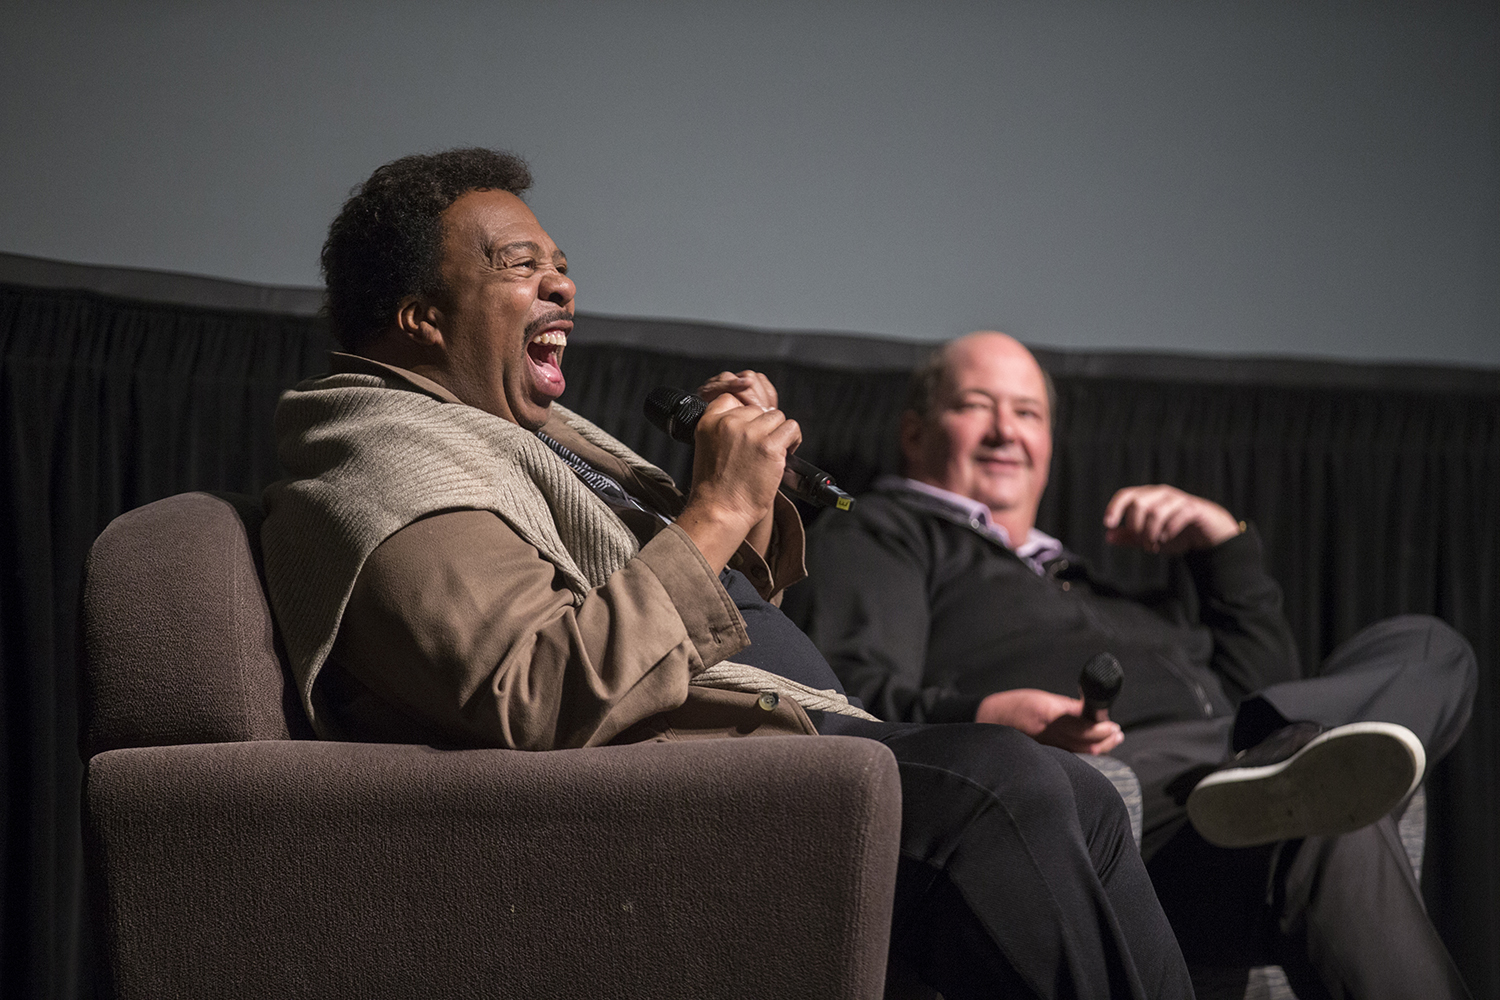 Comedians Leslie David Baker (Stanley) and Brian Baumgarter (Kevin), from